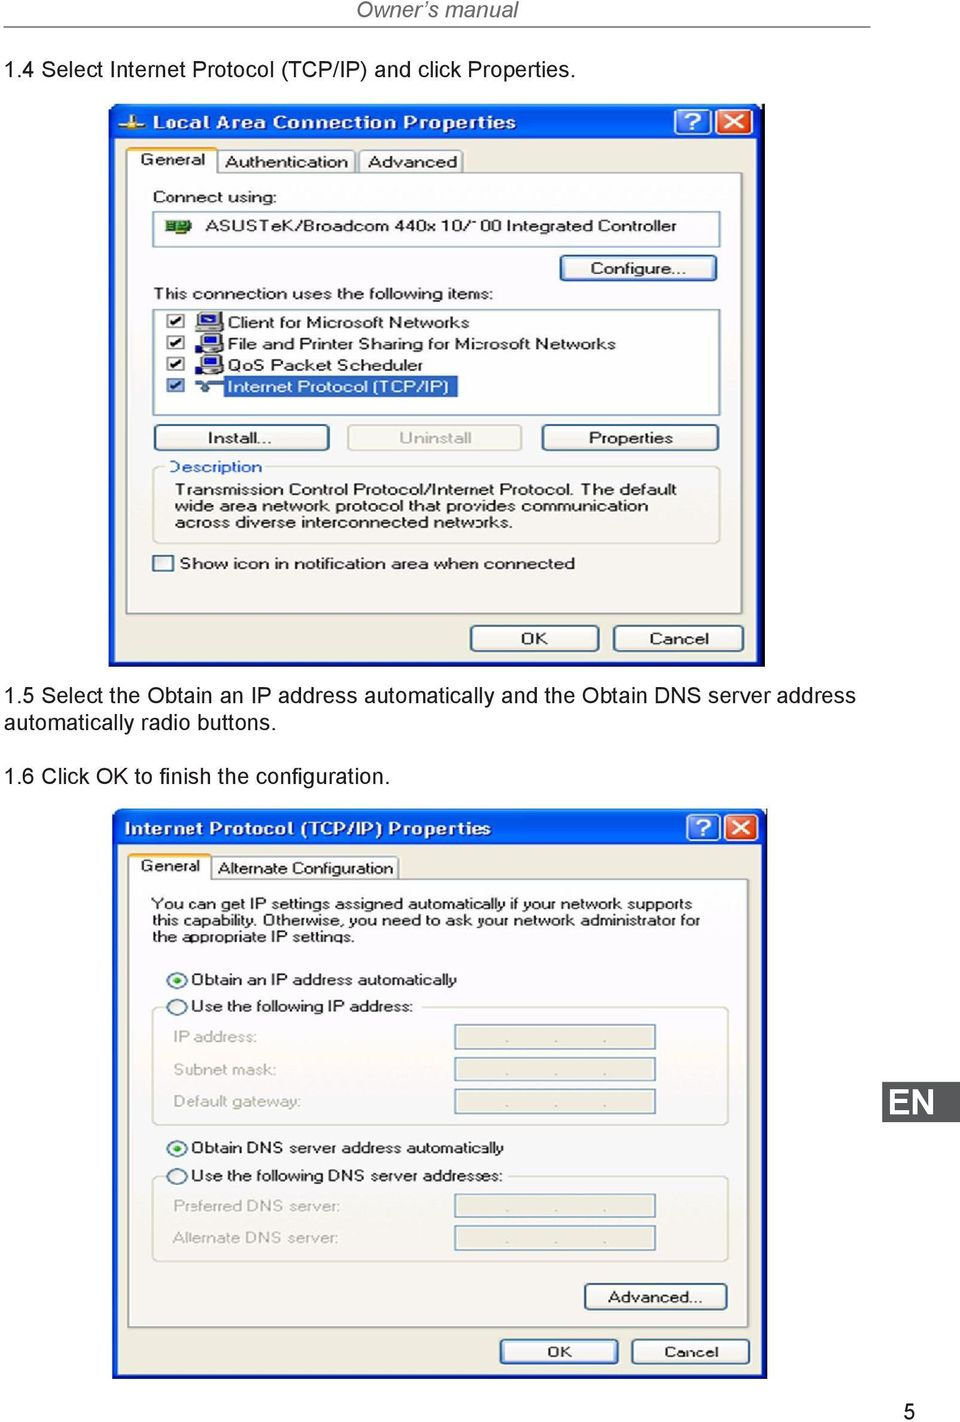 1.5 Select the Obtain an IP address automatically and the